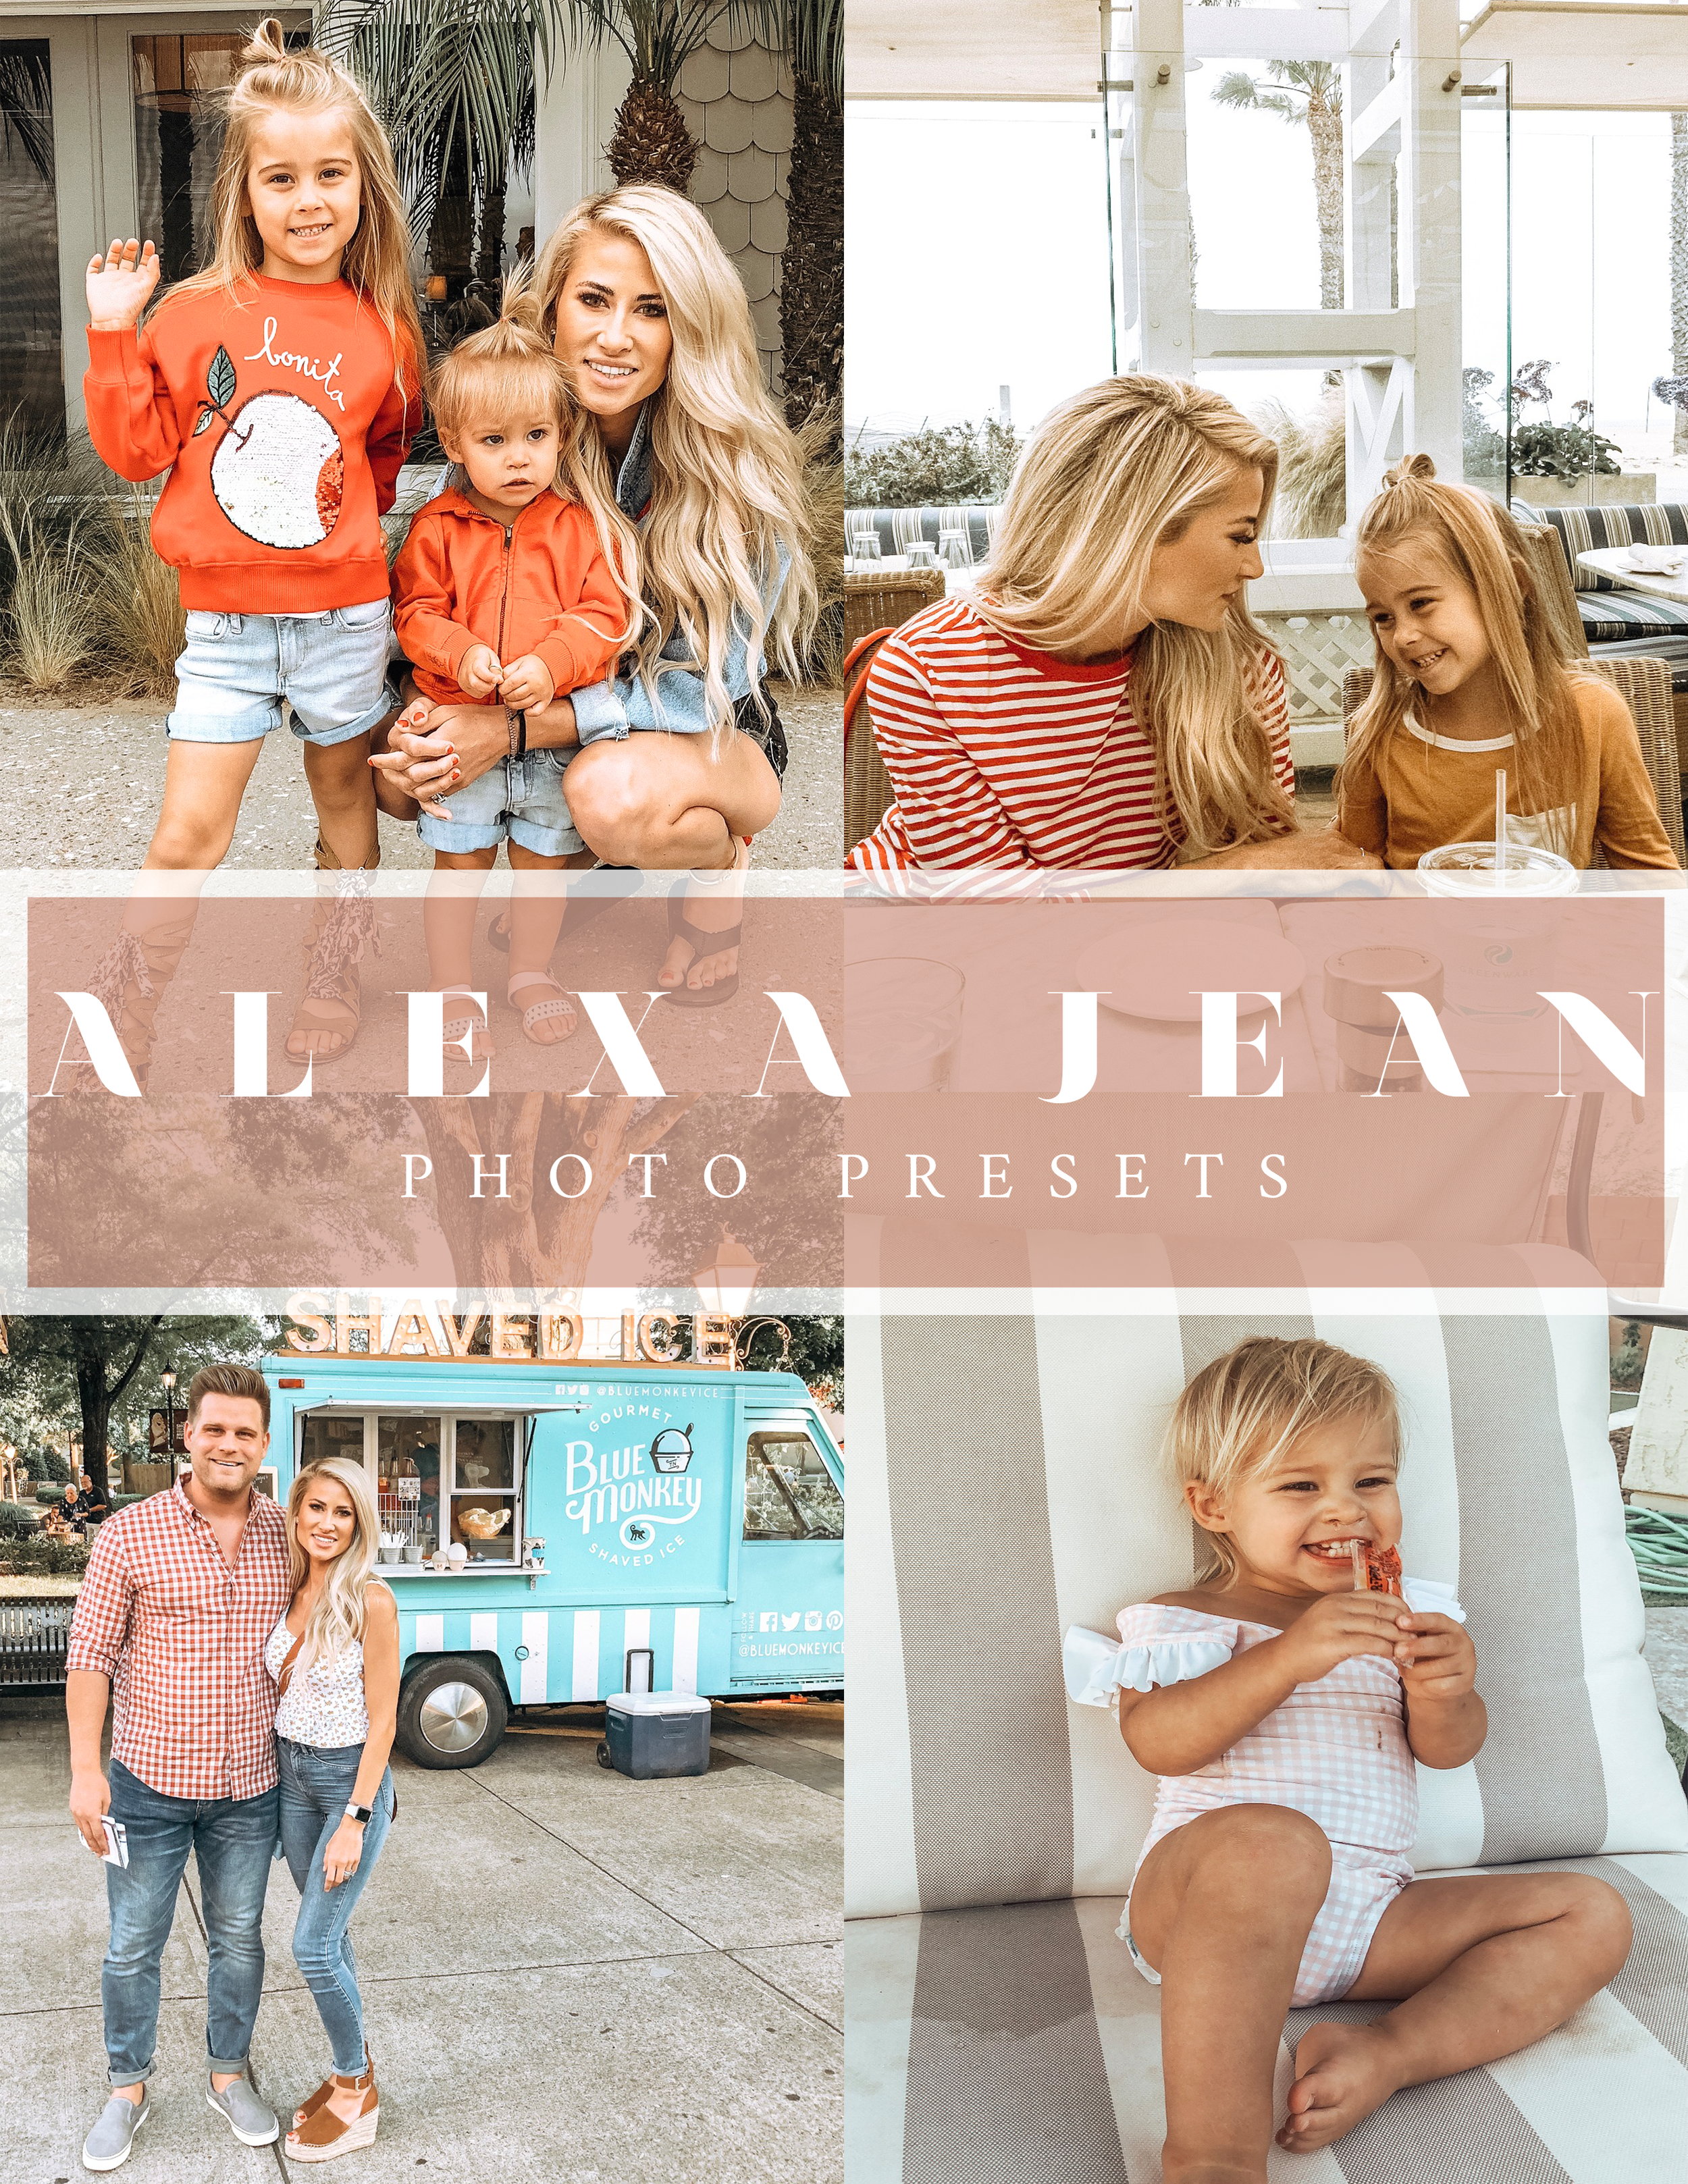 Alexa-Jean-Photo-Presets.png